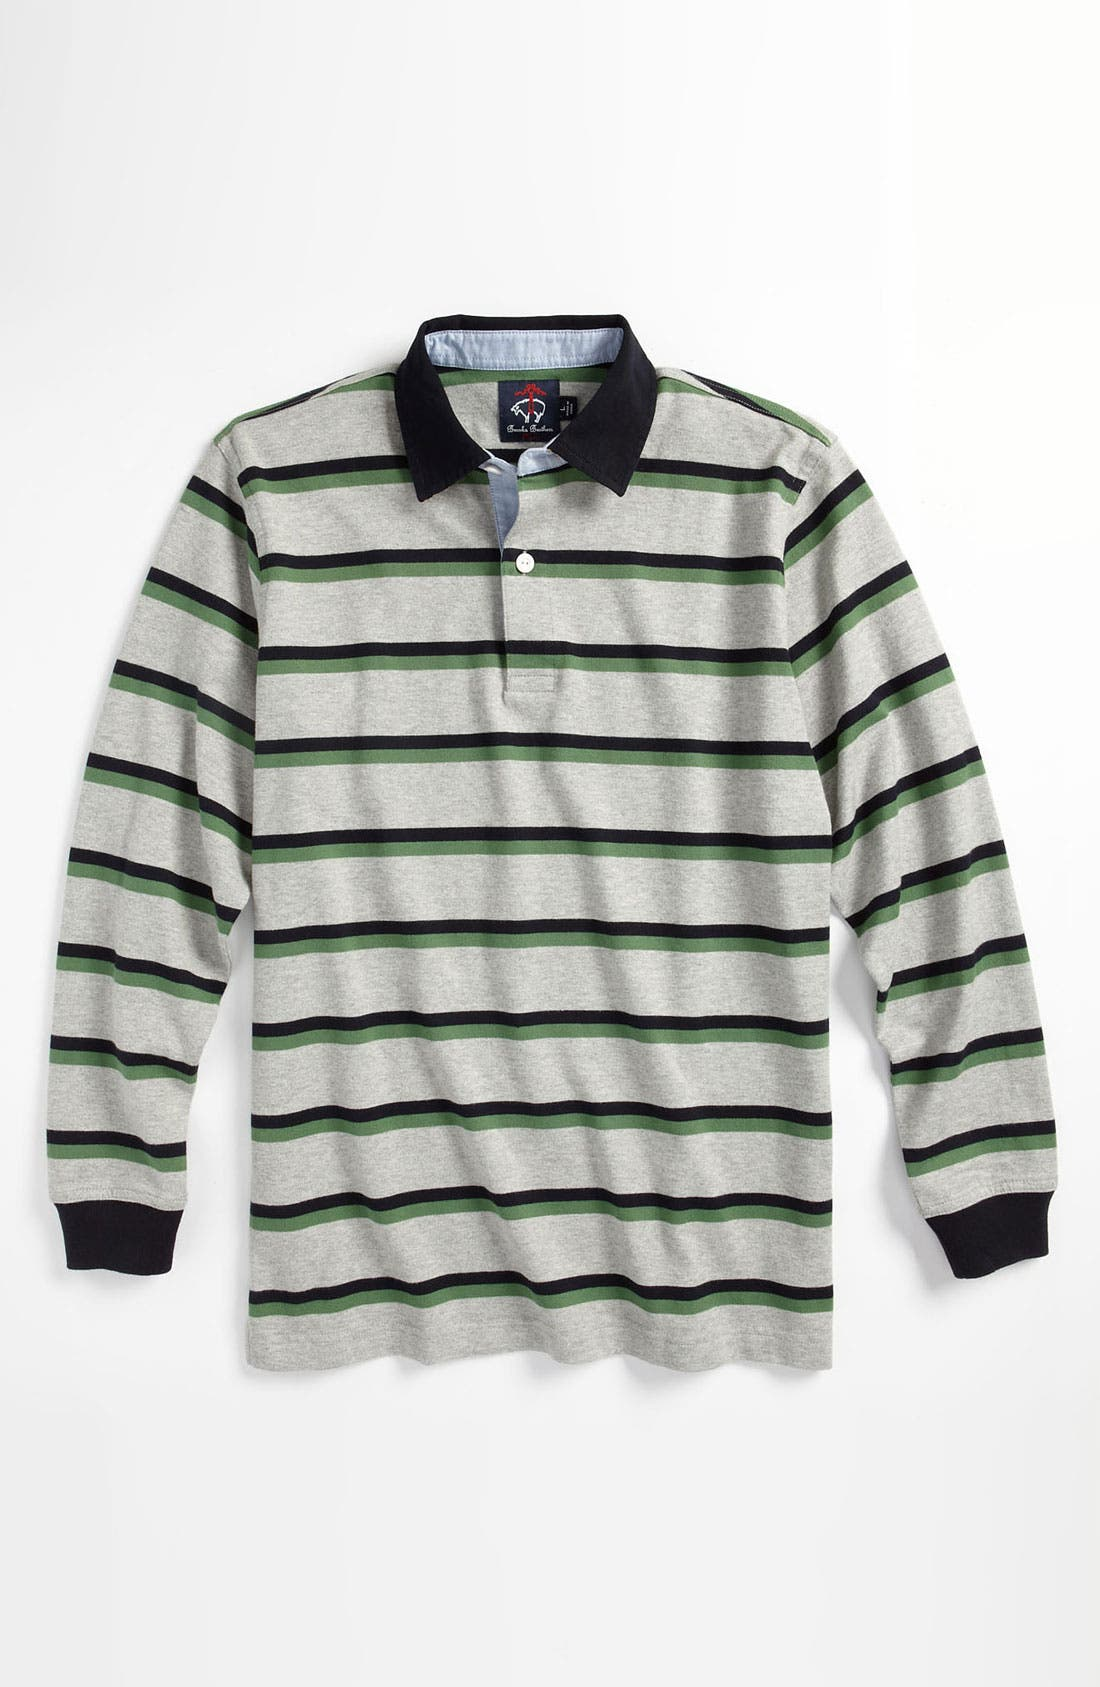 Alternate Image 1 Selected - Brooks Brothers Double Stripe Rugby Shirt (Big Boys)